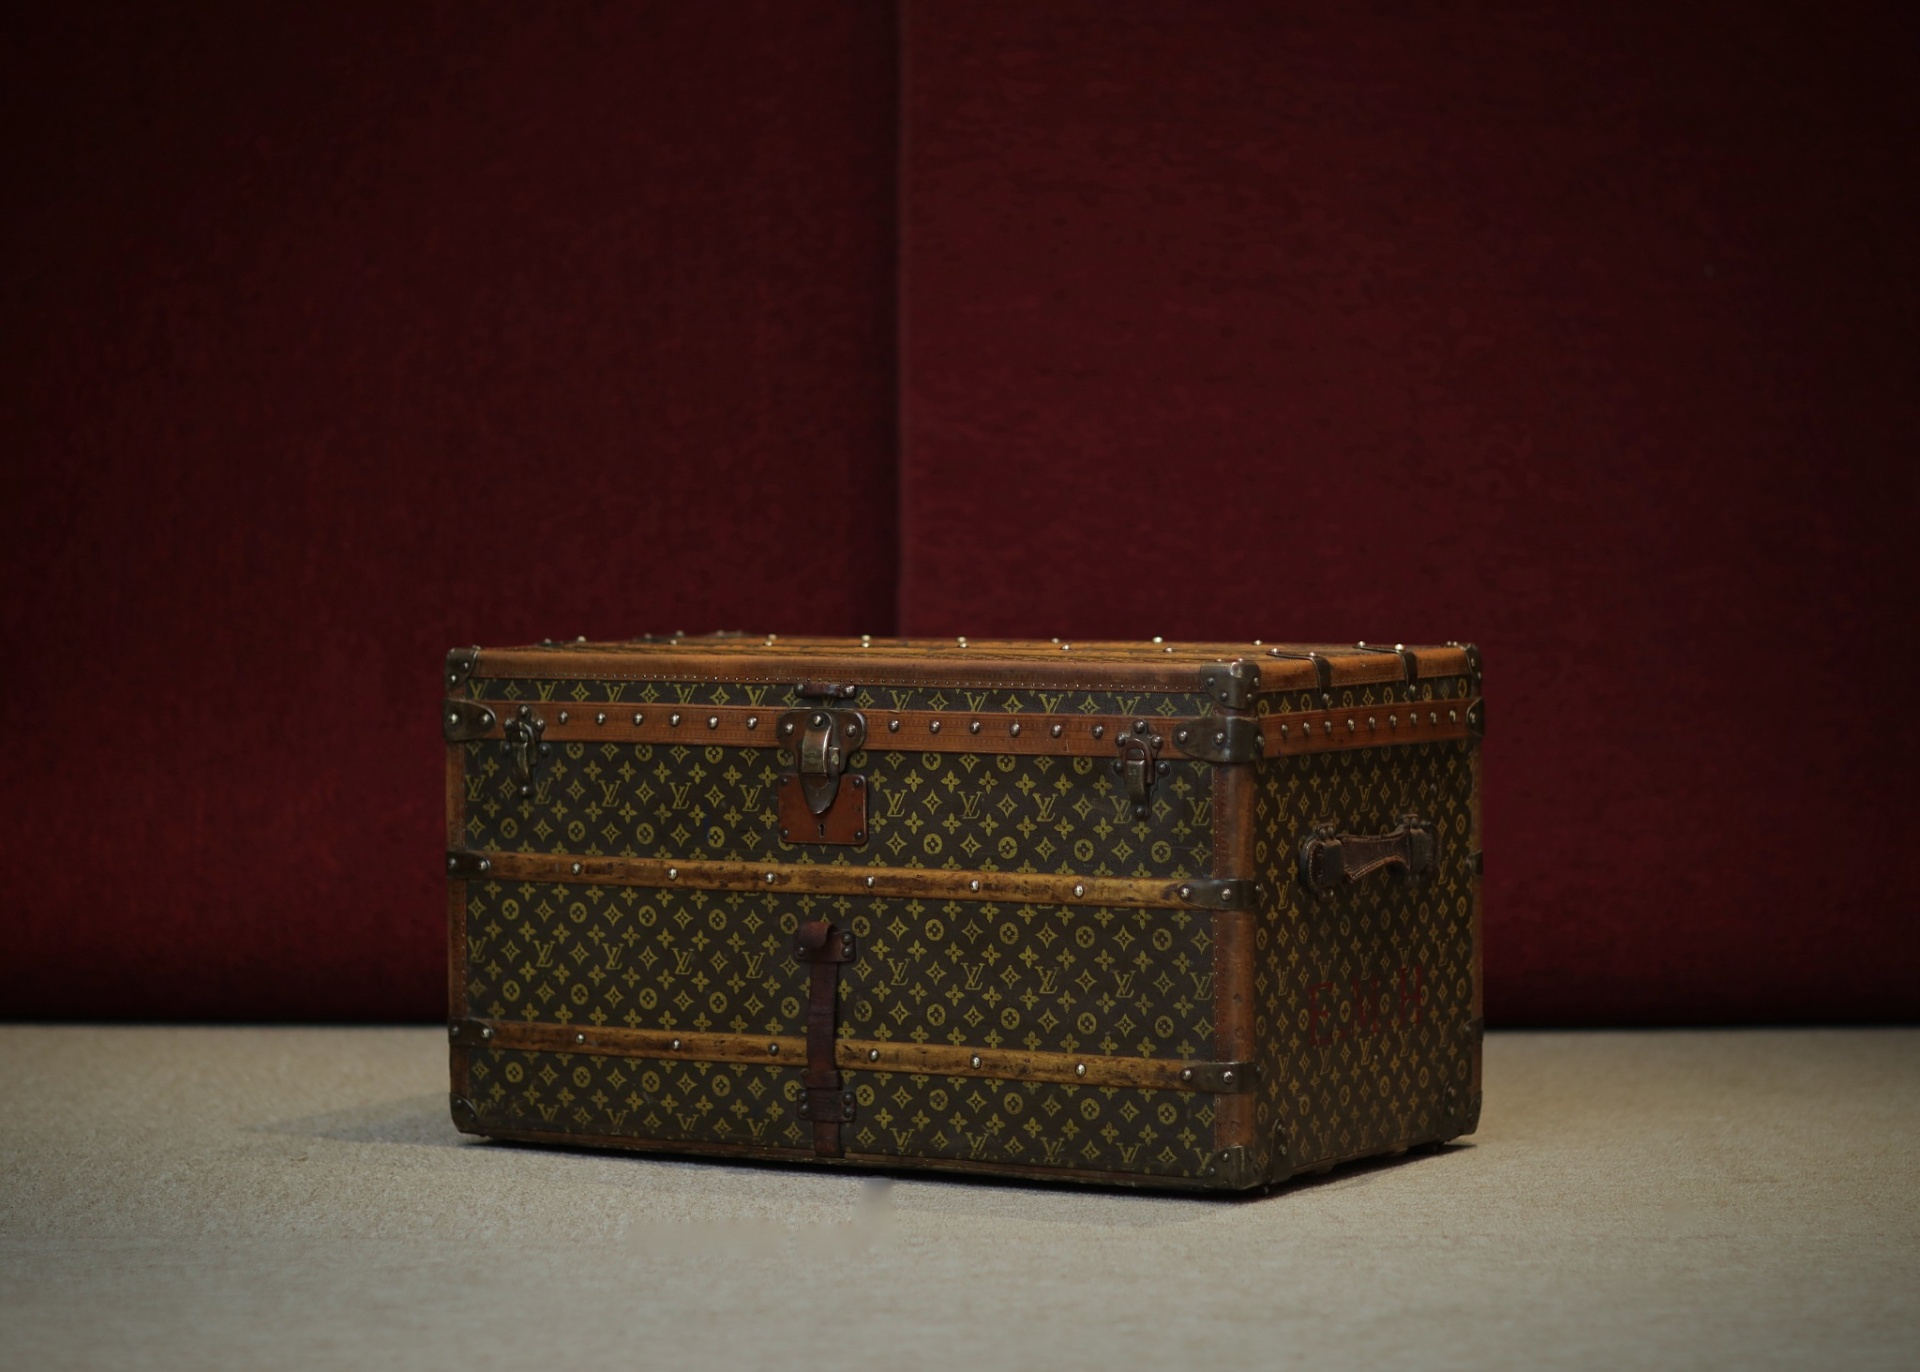 the-trunk-louis-vuitton-thumbnail-product-5625-1